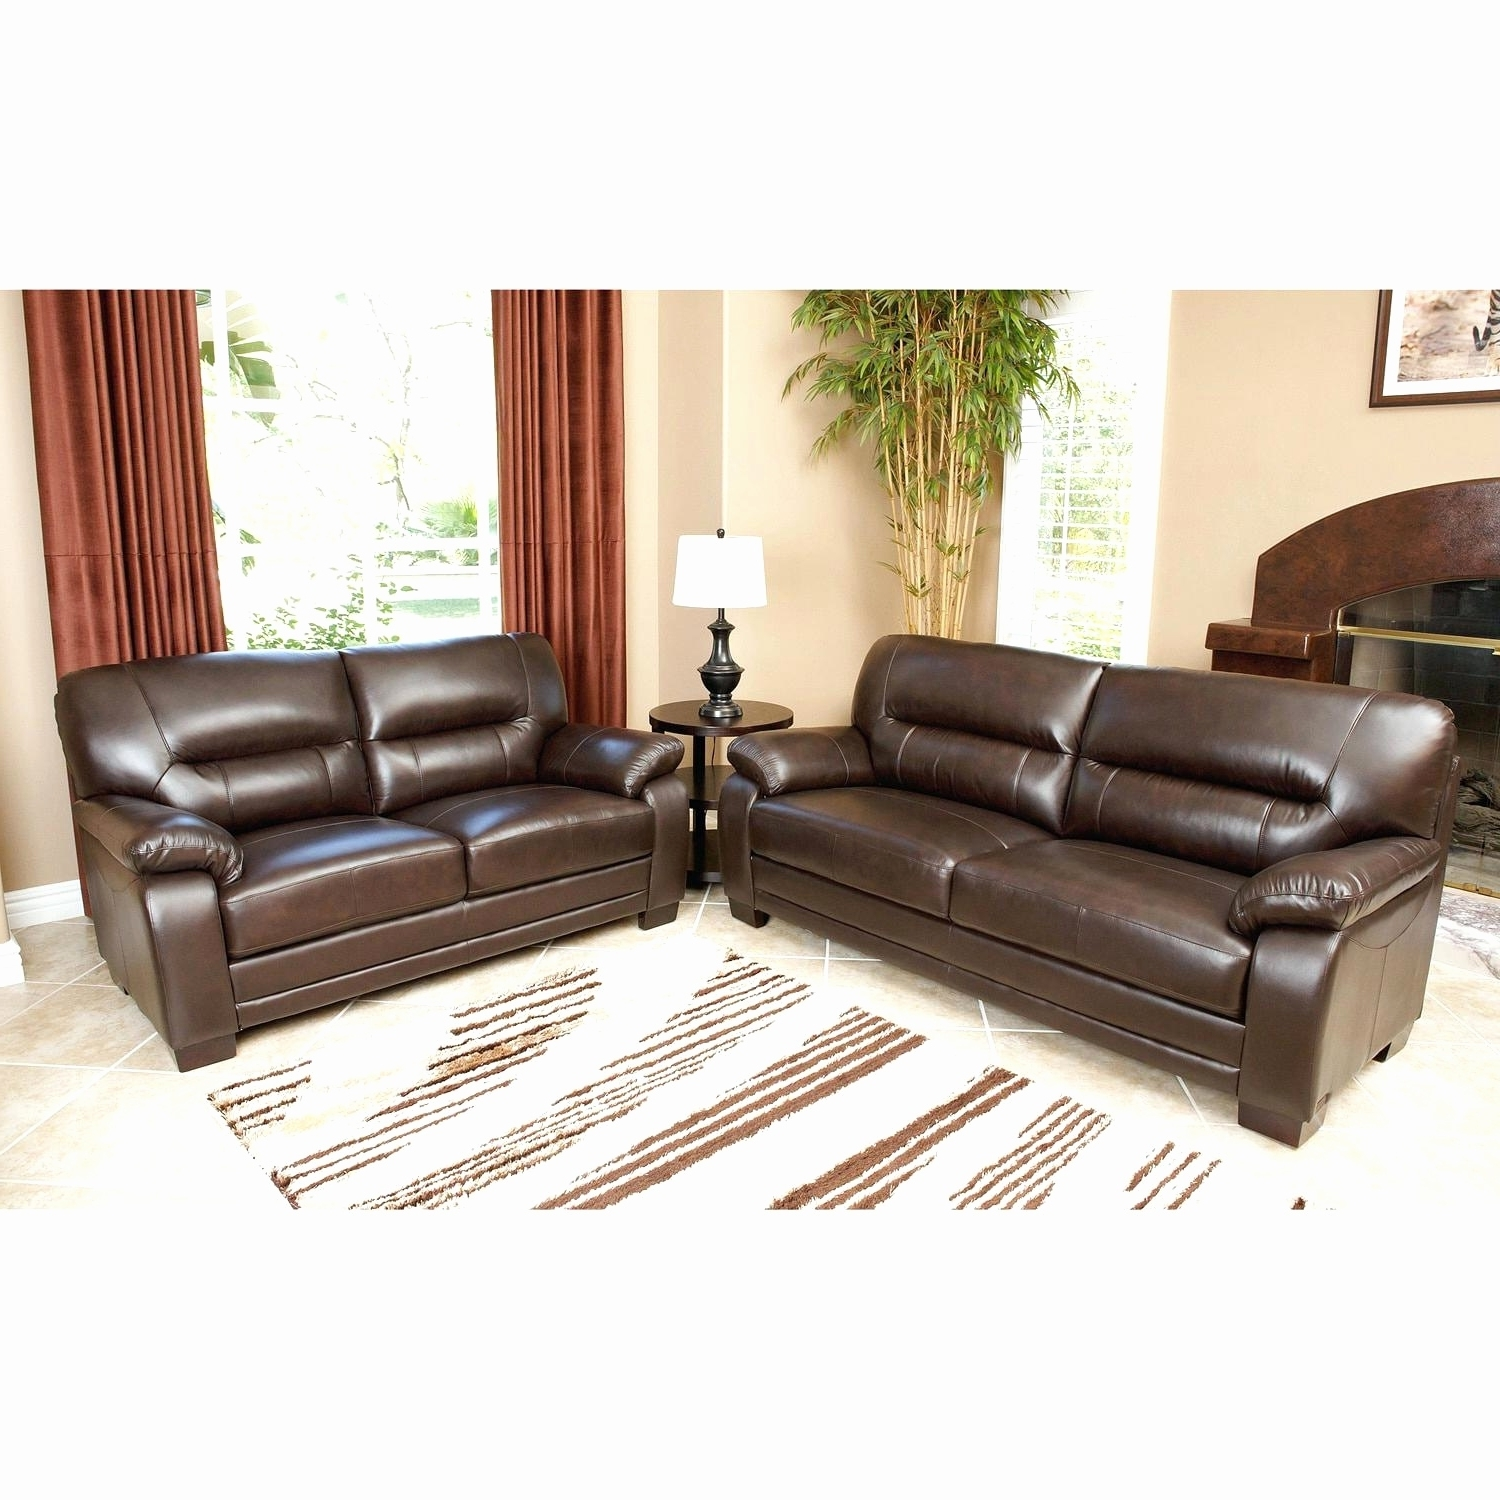 Preferred Sectional Sofas At Barrie With Regard To New Genuine Leather Couches For Sale 2018 – Couches And Sofas Ideas (View 7 of 20)